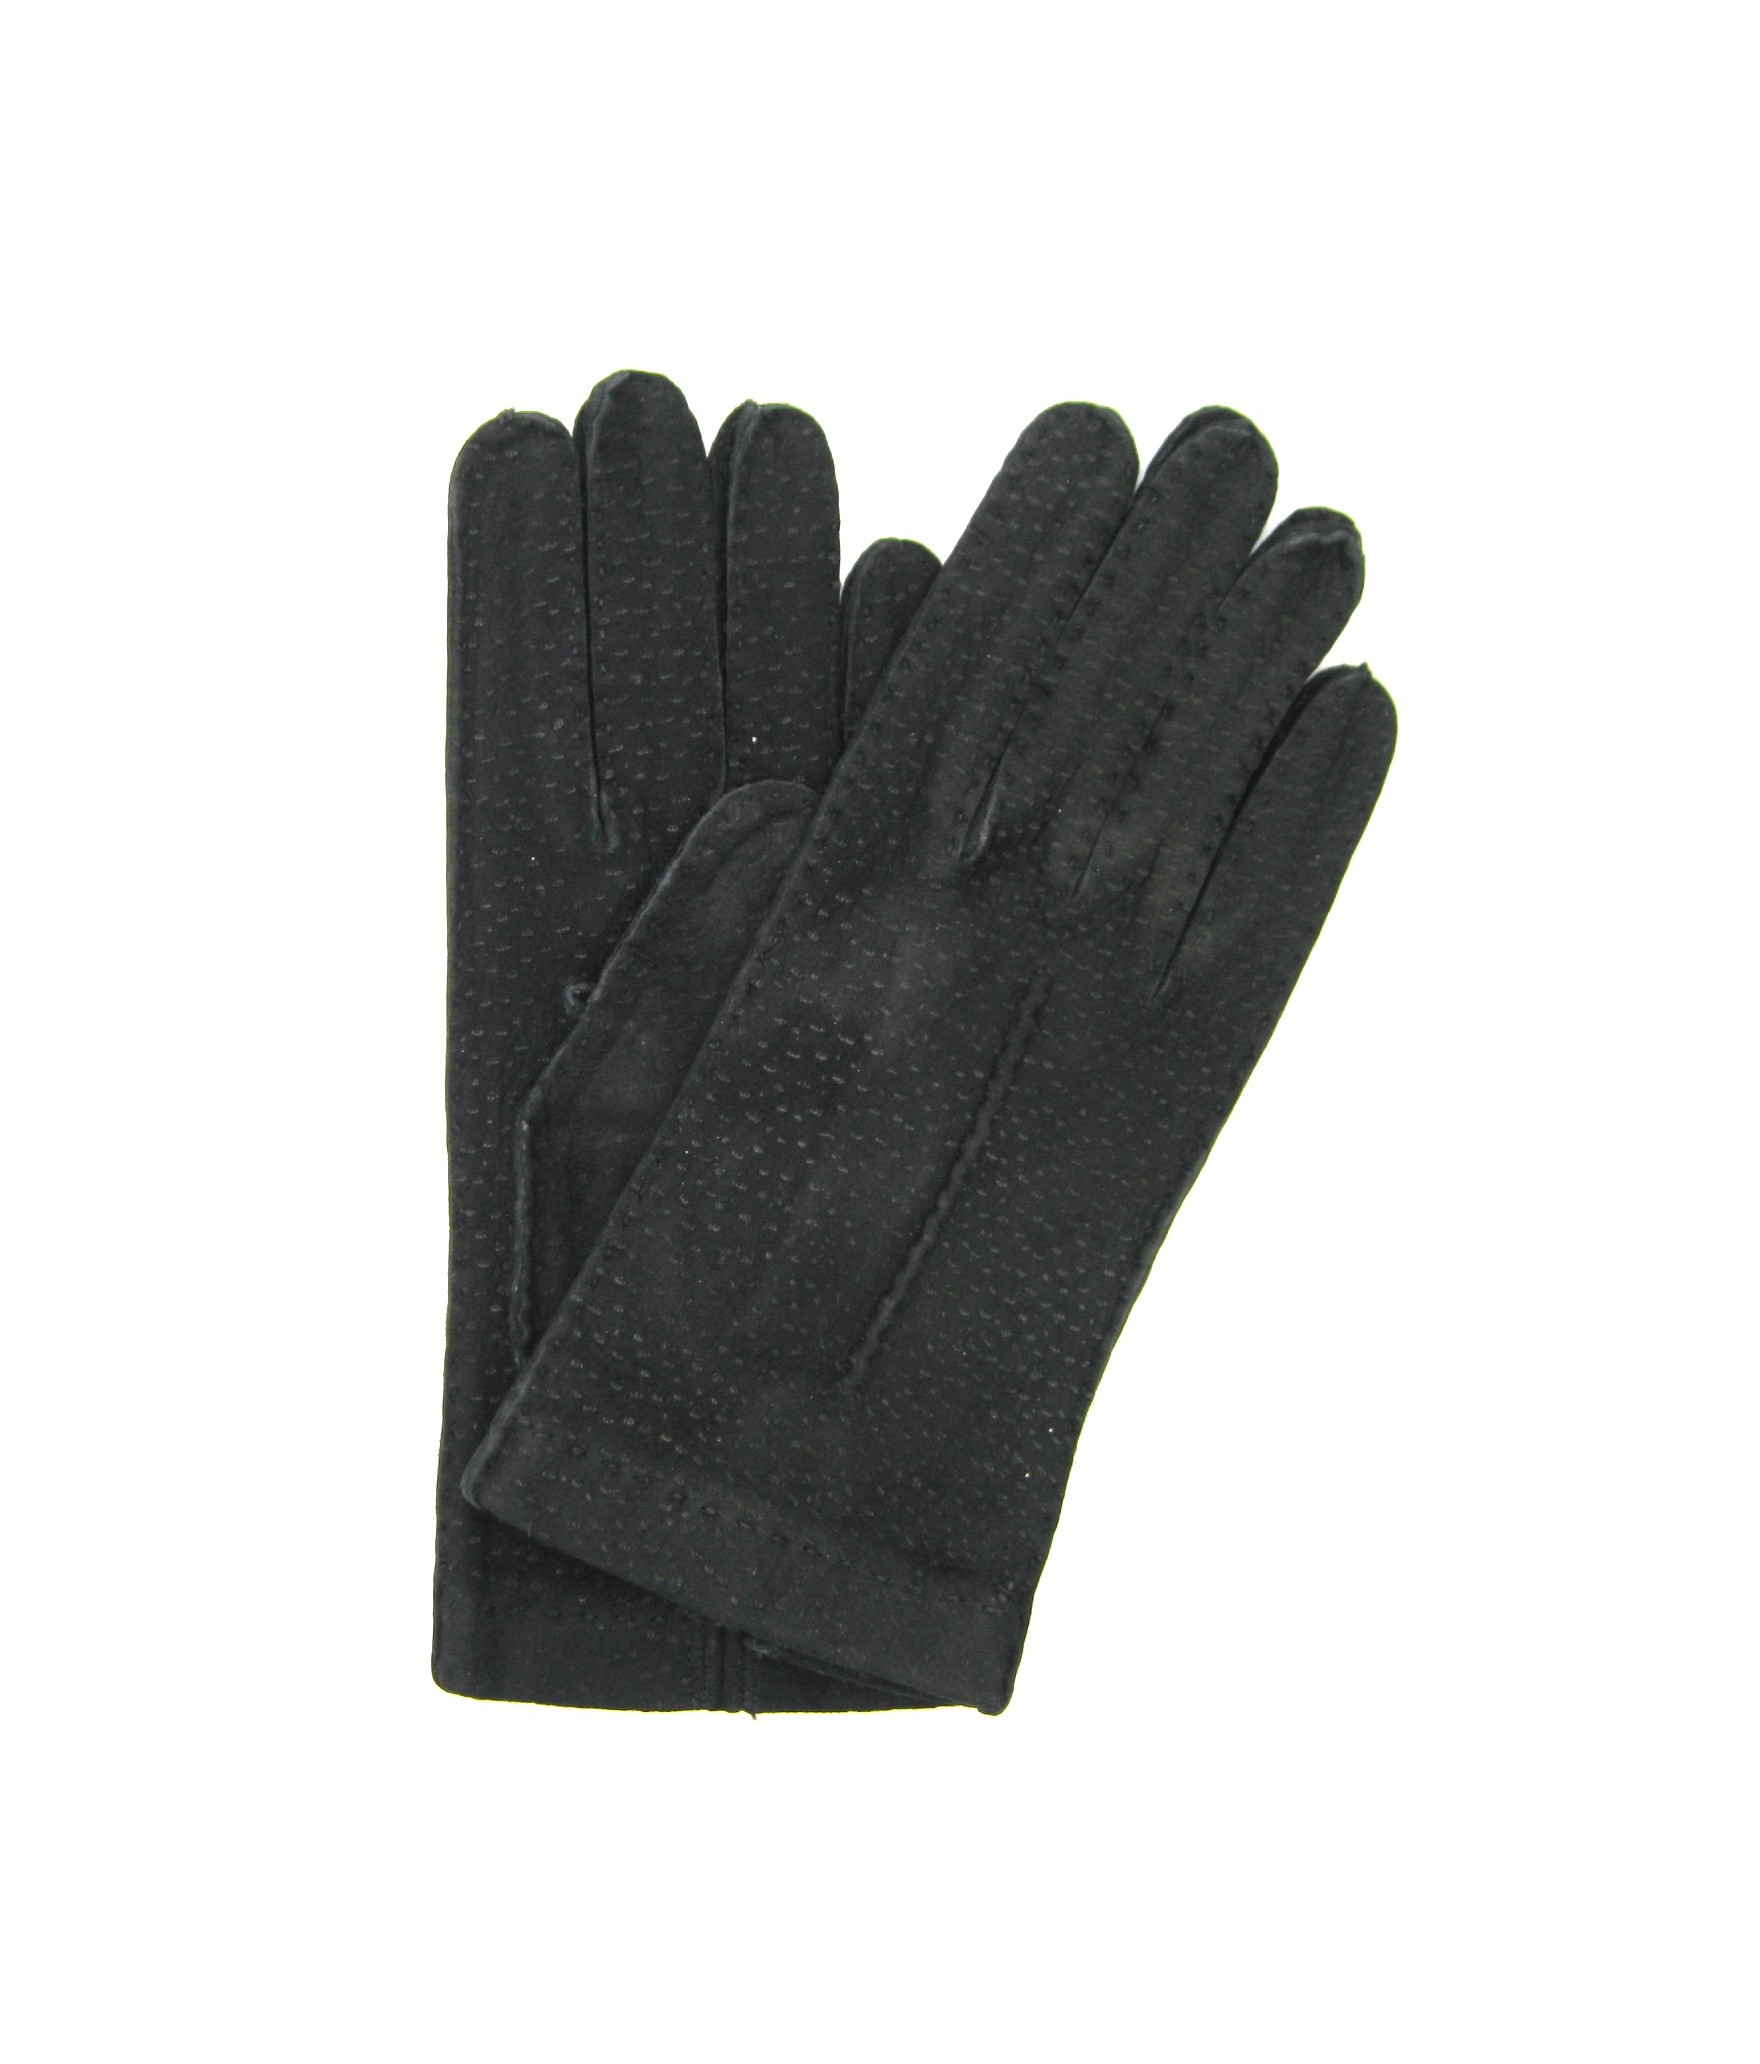 Unlined Carpincho leather gloves, Hand Stitching Black